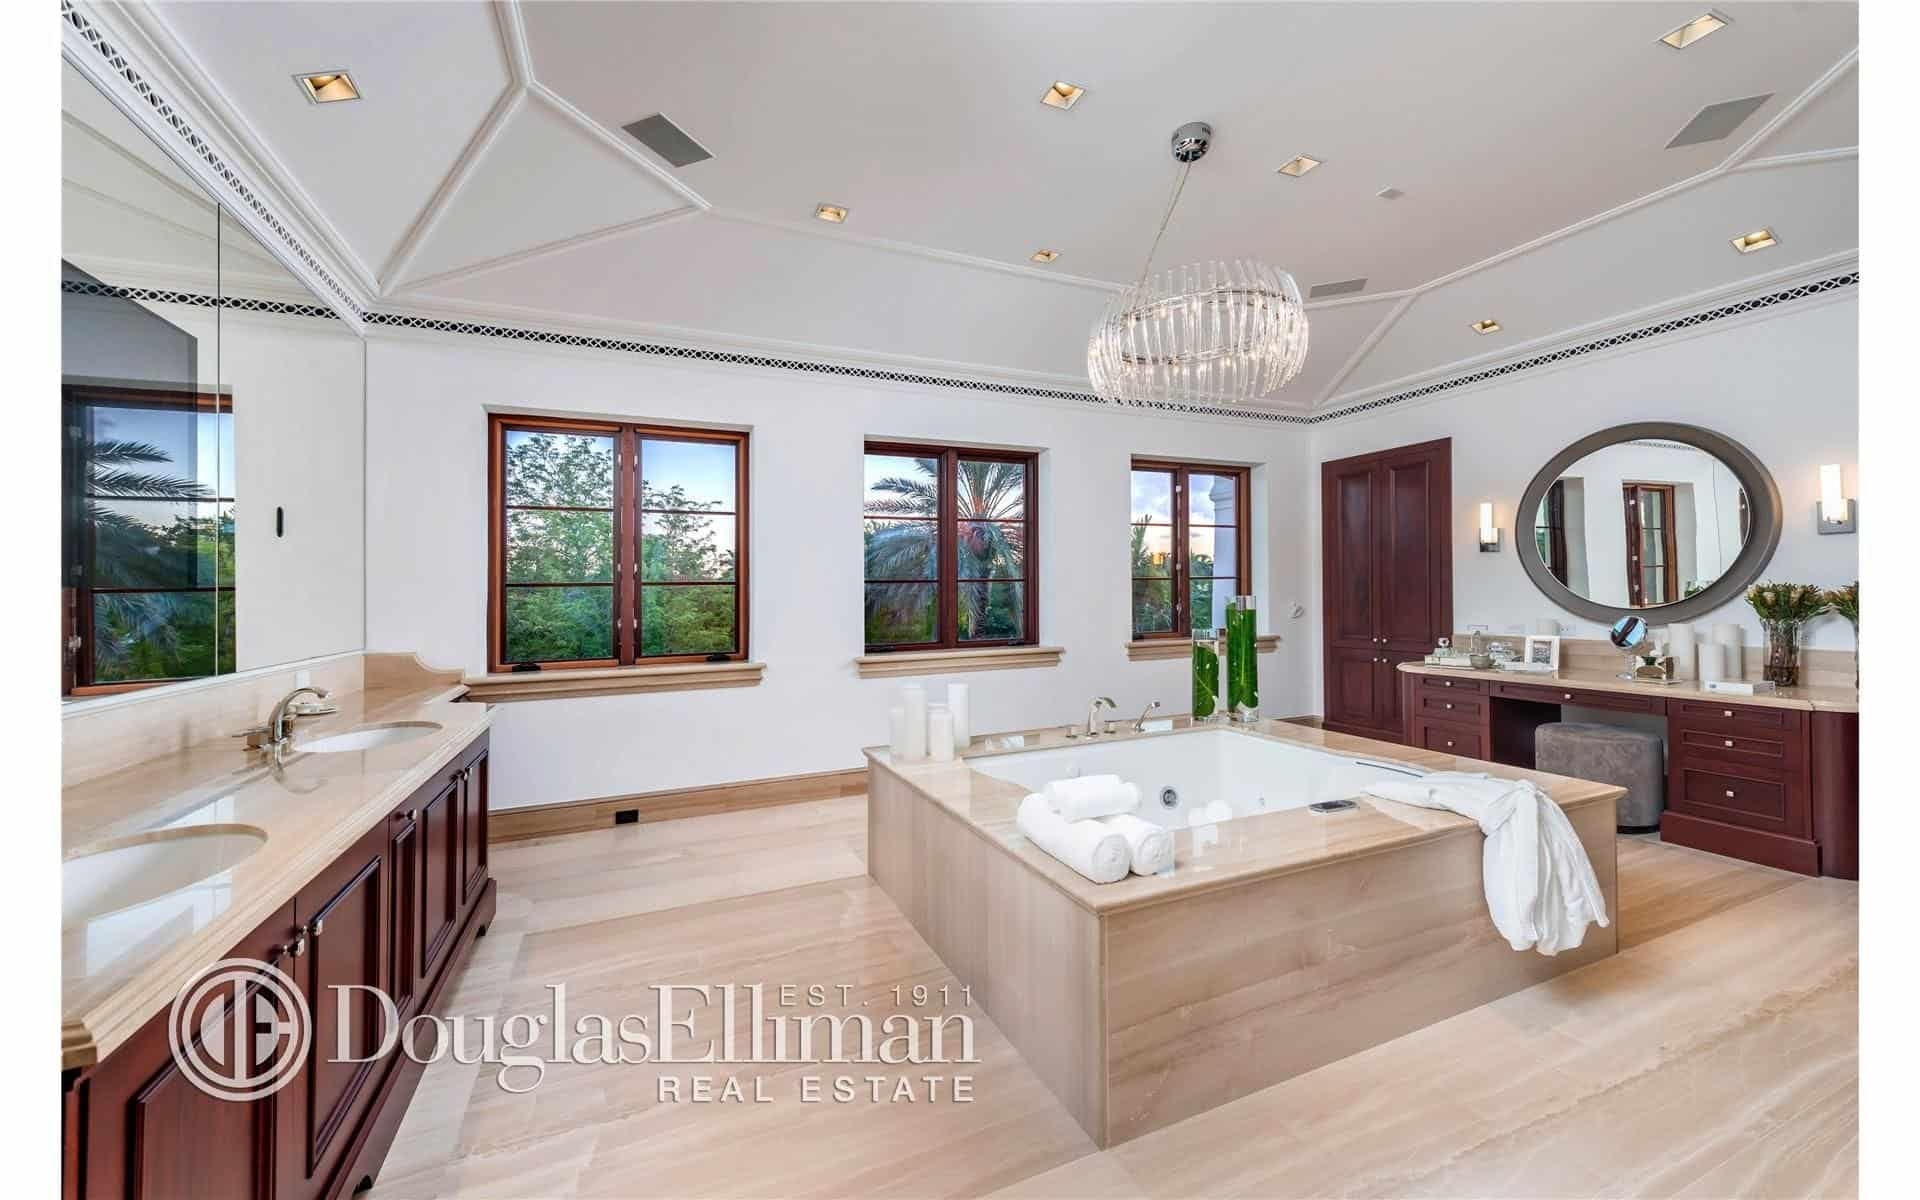 The brilliant white cove ceiling is accented with white moldings to emphasize the elegant lines of the ceiling. This is paired with a large crystal round decorative pendant light hanging over the bathtub in the middle houses in the same beige tiles as the flooring.